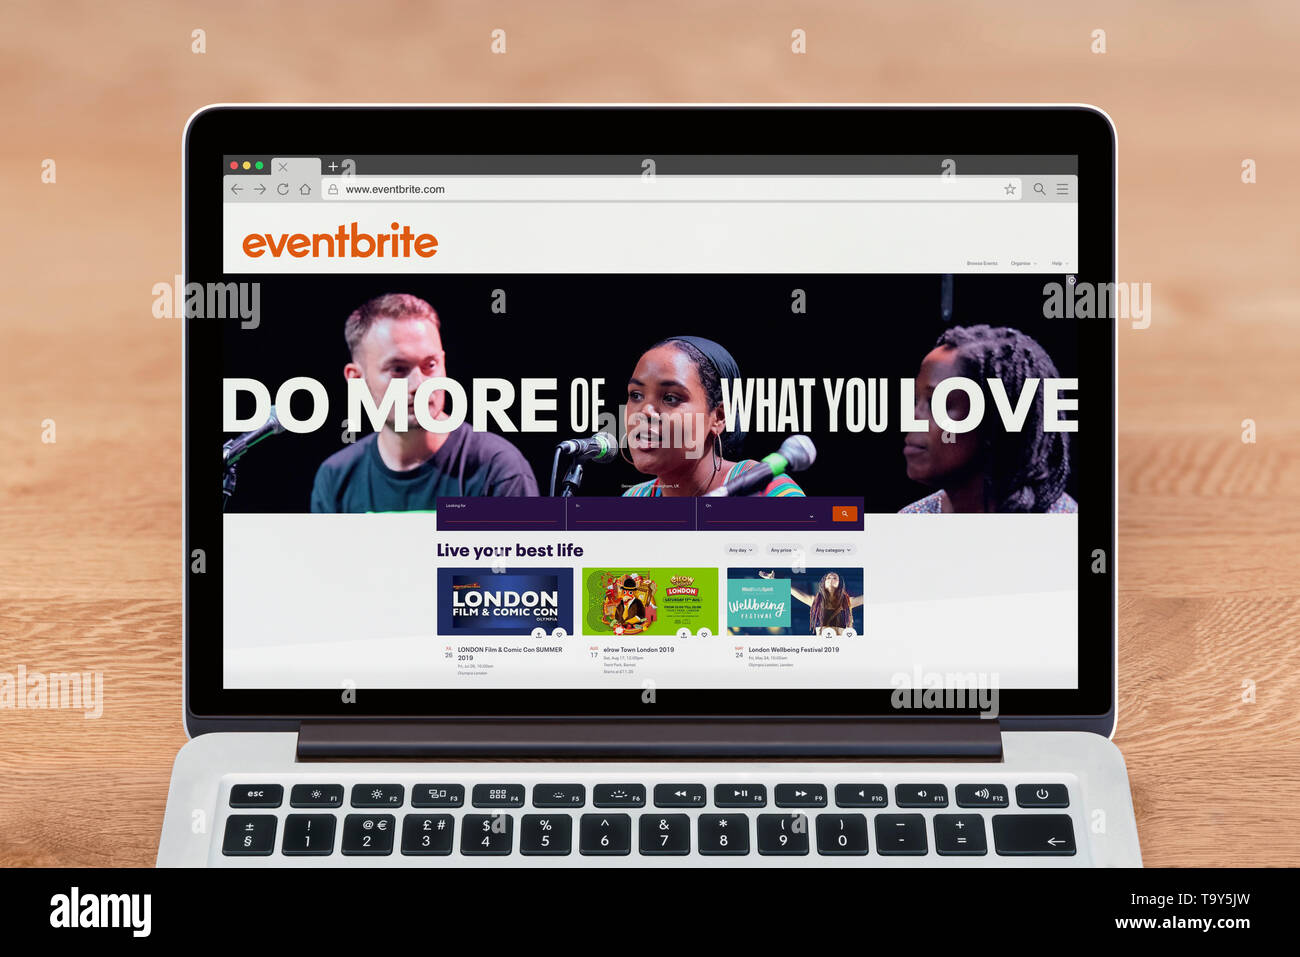 An Apple Macbook displays the Eventbrite website (Editorial use only). - Stock Image